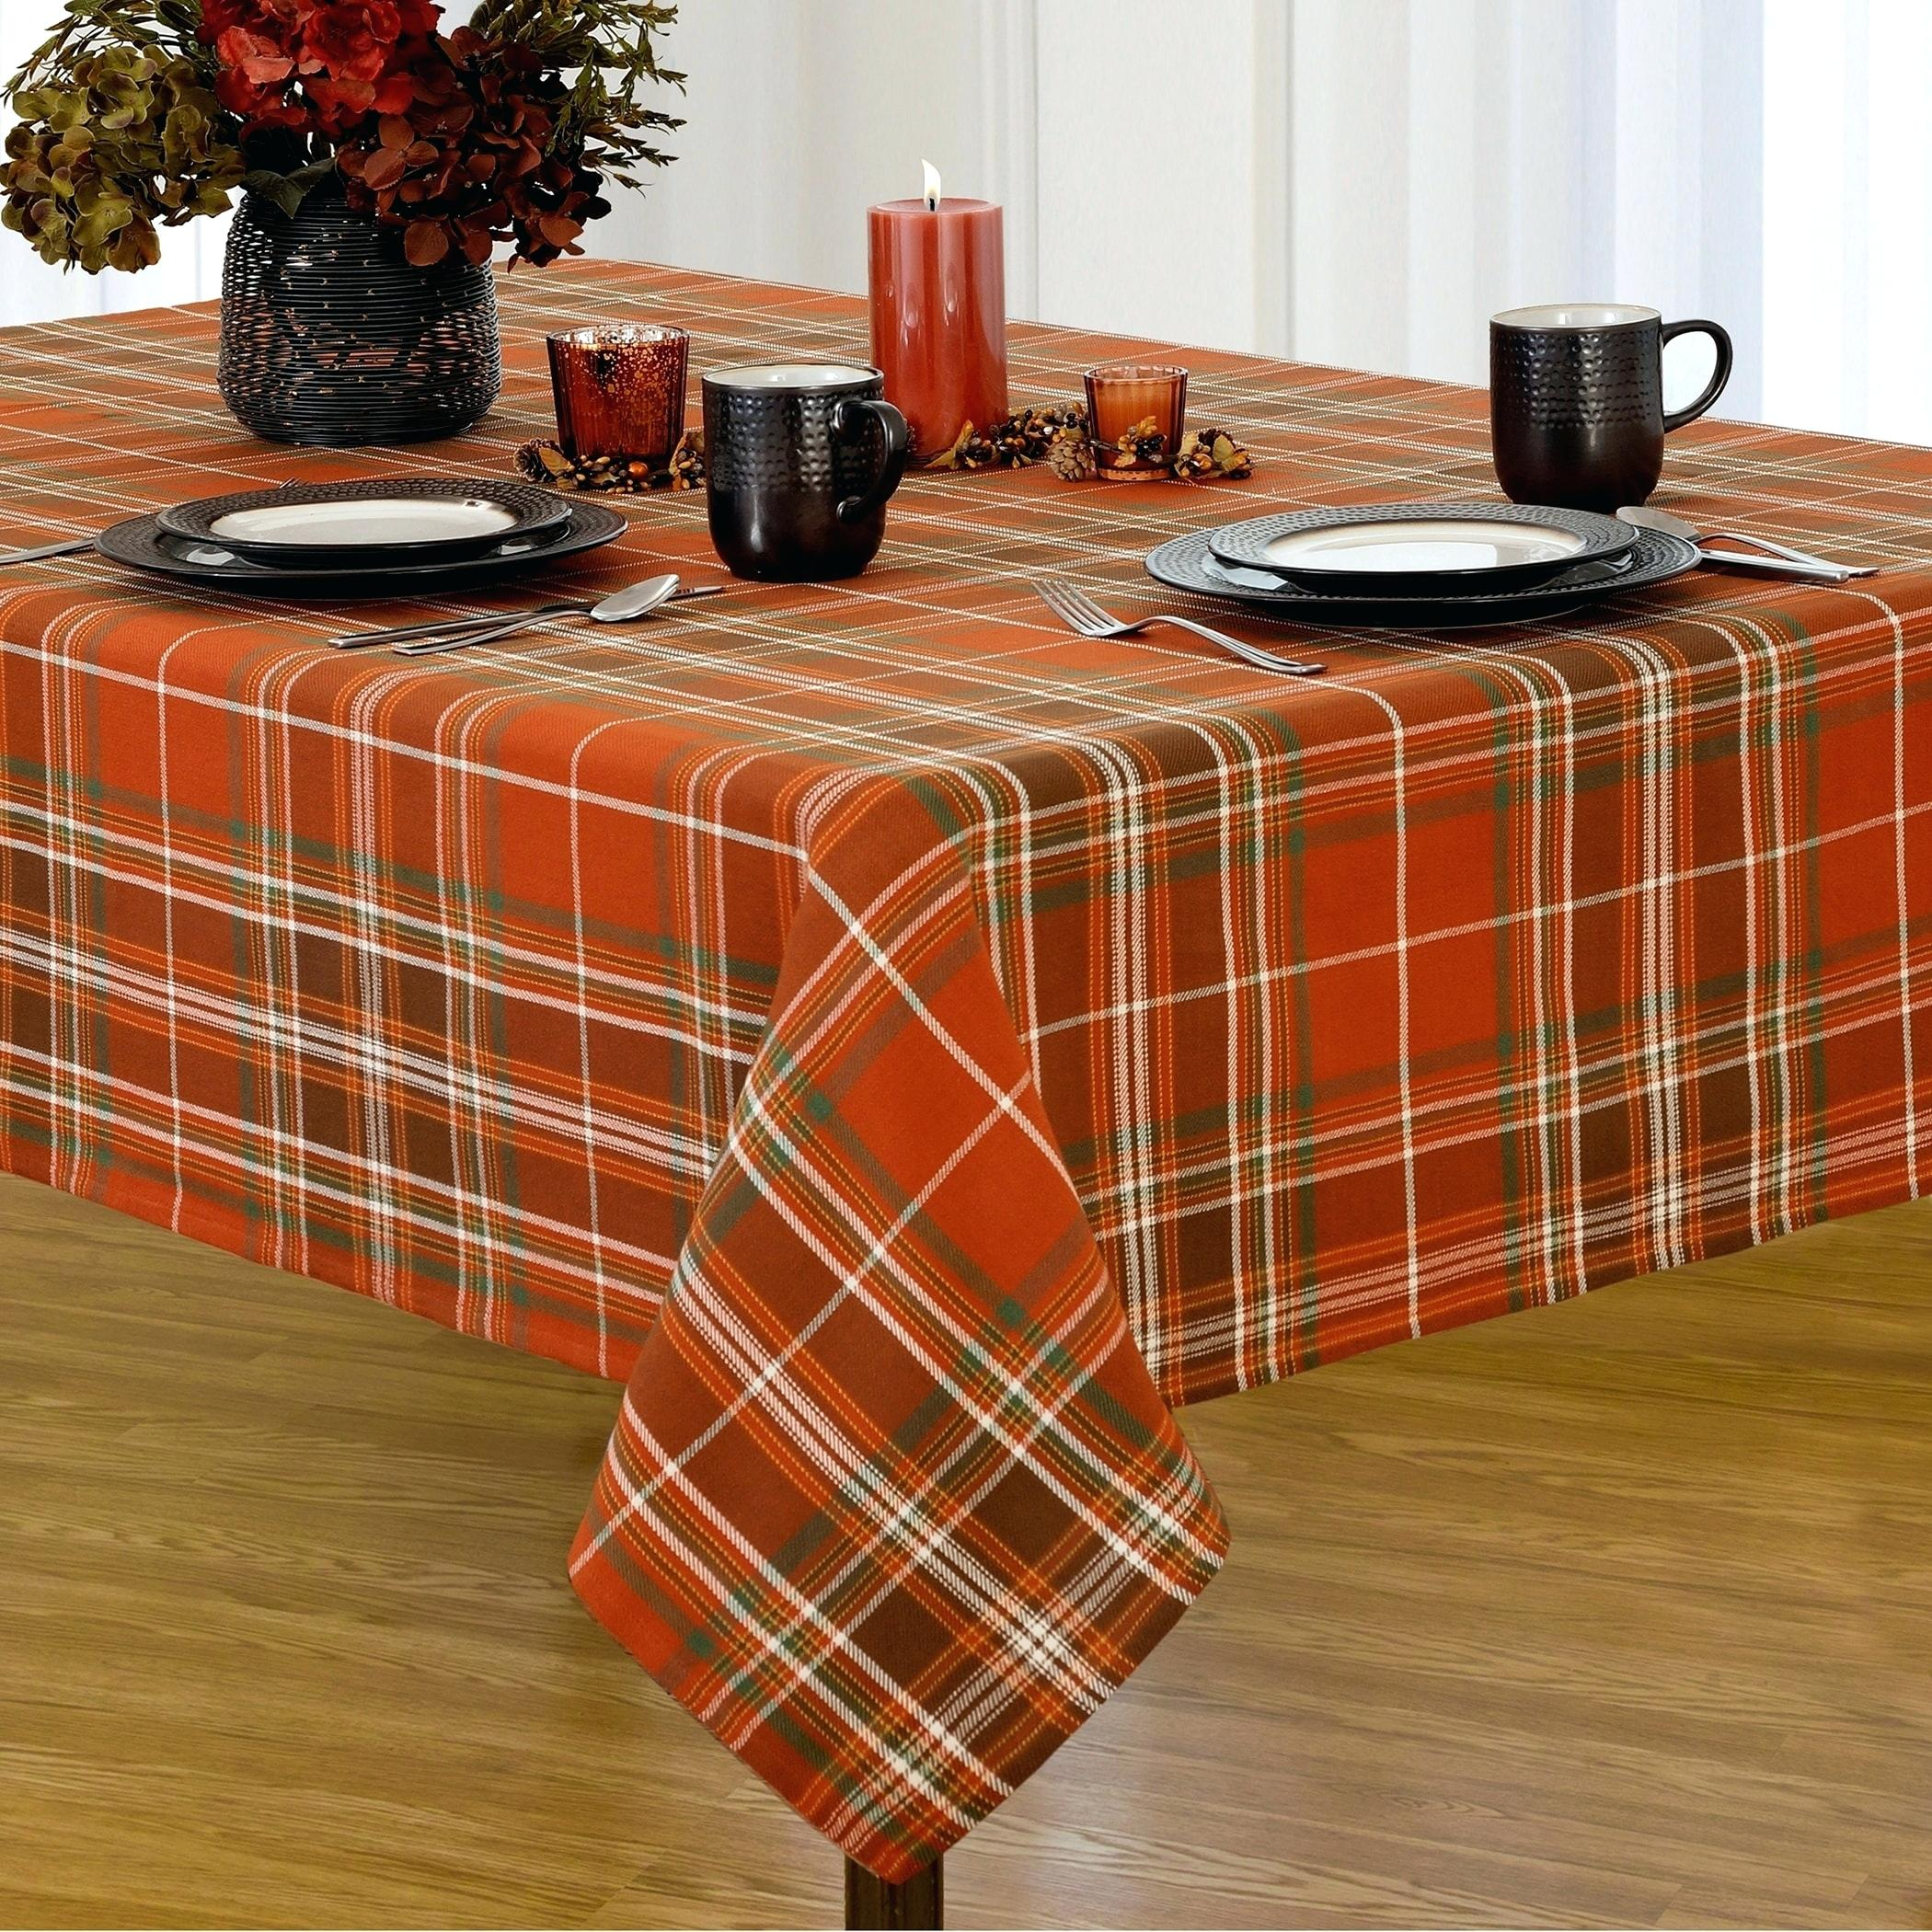 round accent table covers tablecloth for plaid fabric harvest cotton woven small with target tablecloths bedroom side tables jcpenney end placemat faceted mirror pottery barn